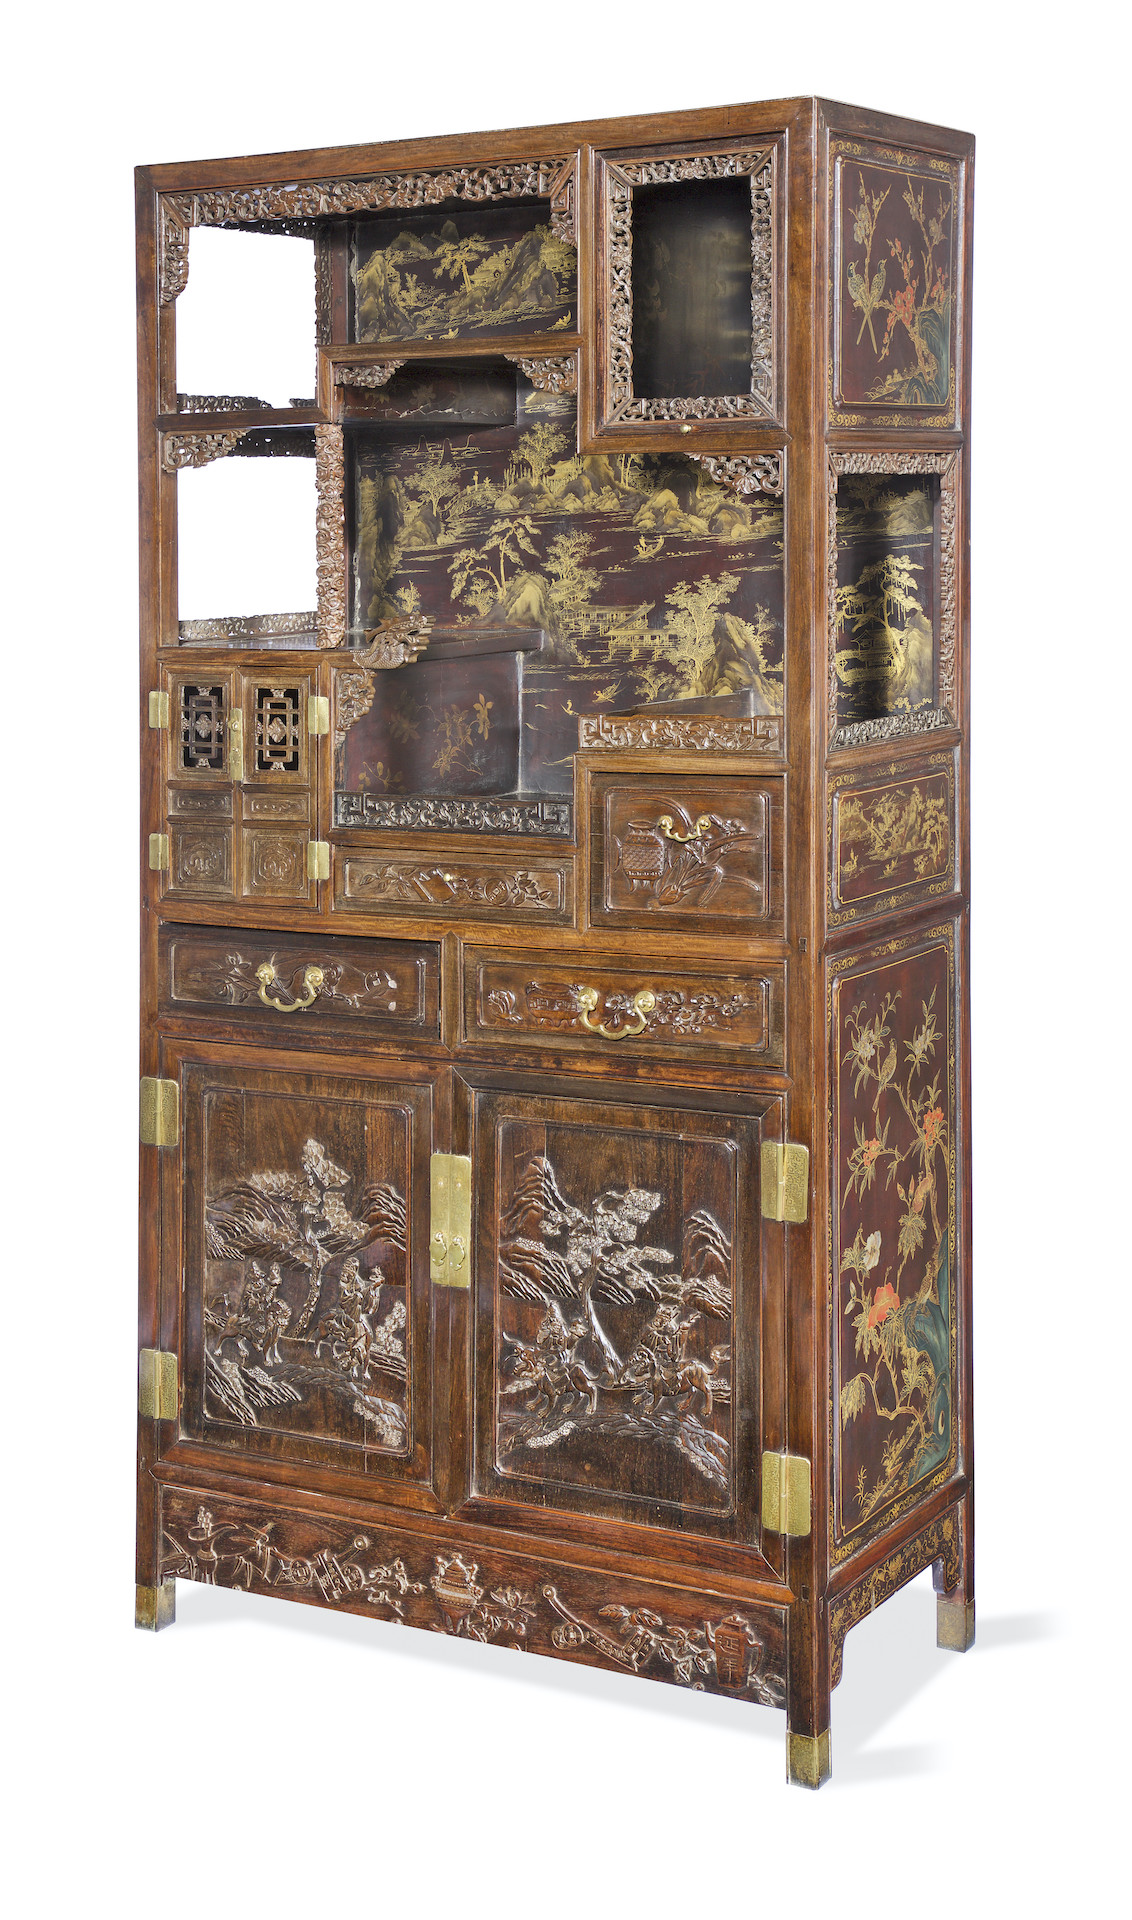 A MAGNIFICENT GILT-LACQUERED ZITAN-VENEERED DISPLAY CABINET, Qing Dynasty, 194cm (76 1/2in) high x 43cm (17in) deep x 94cm (37in) wide. £50,000-80,000